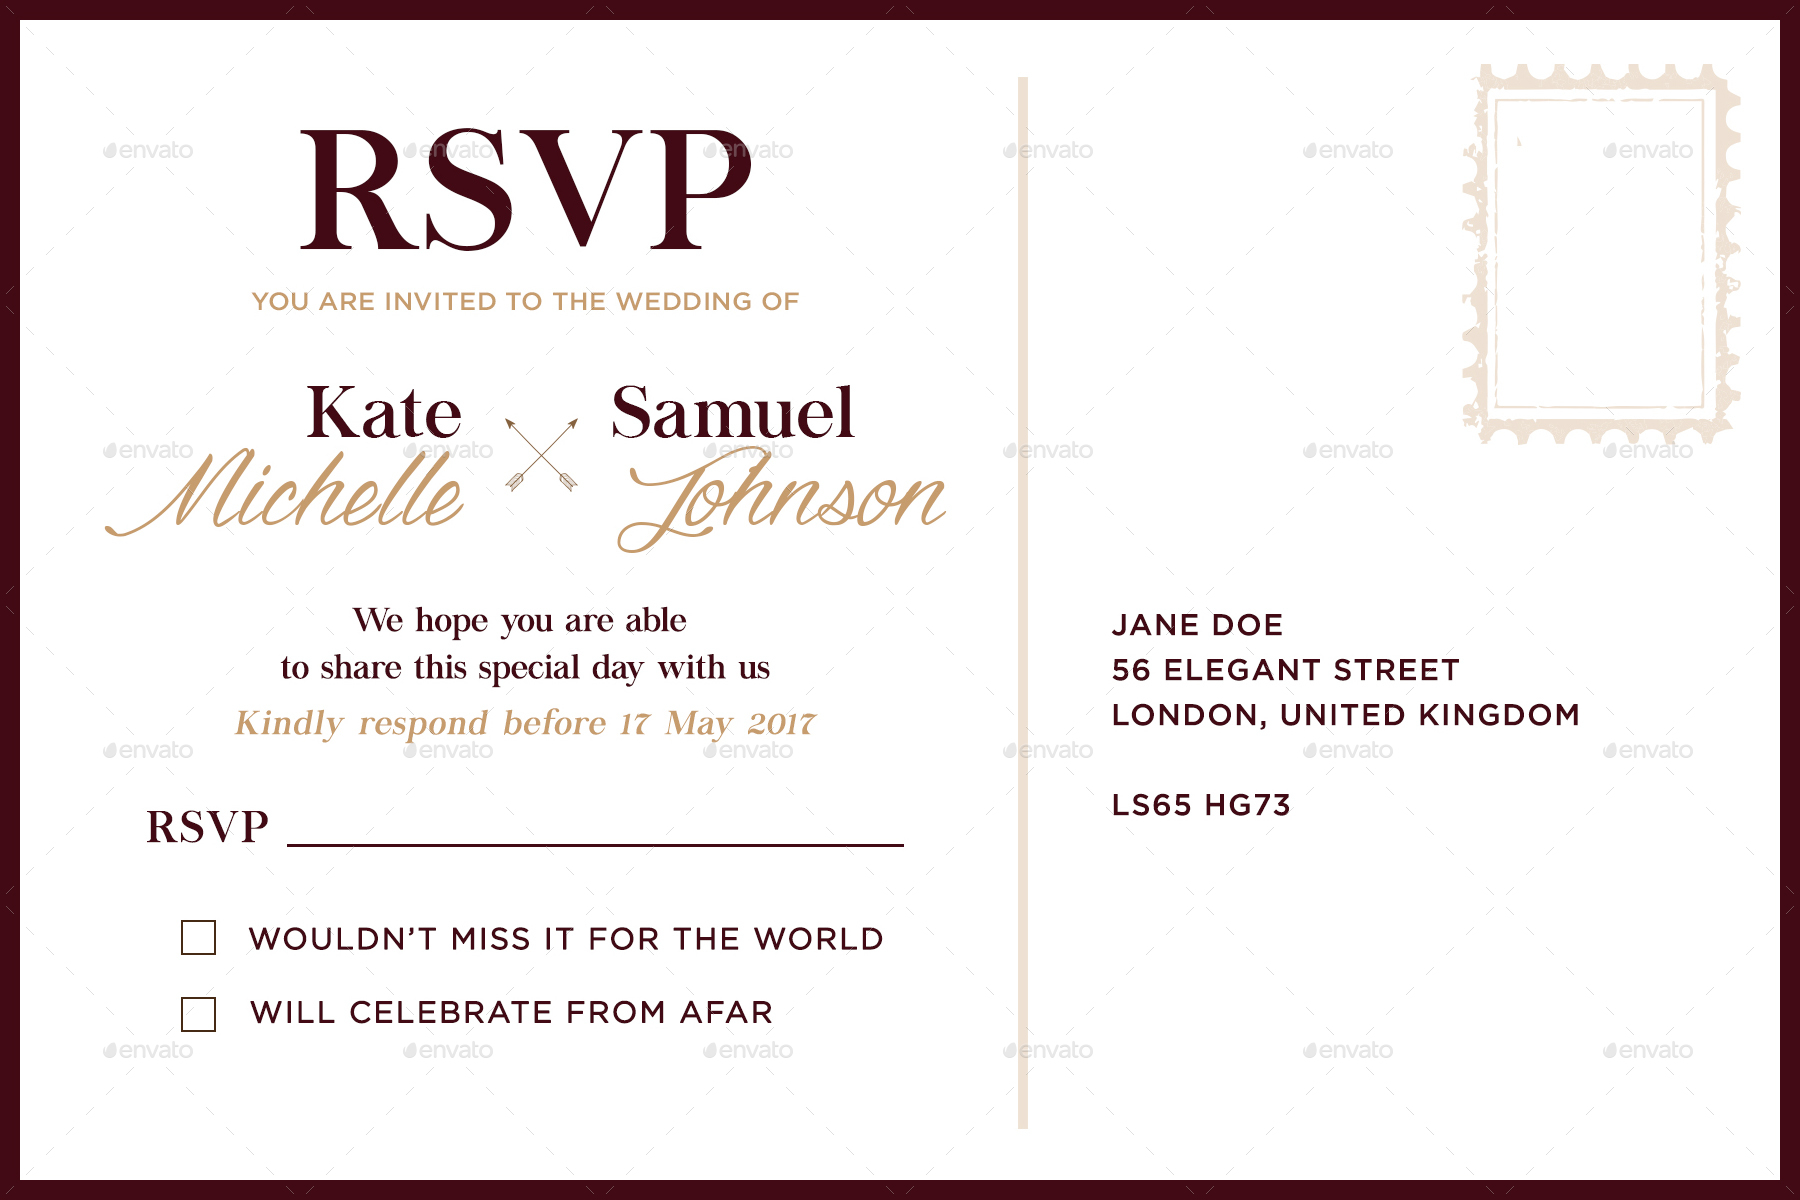 Wedding invitation template by ilmarre graphicriver wedding invitation template weddings cards invites preview image setweddinginvitationtemplatebackg stopboris Image collections